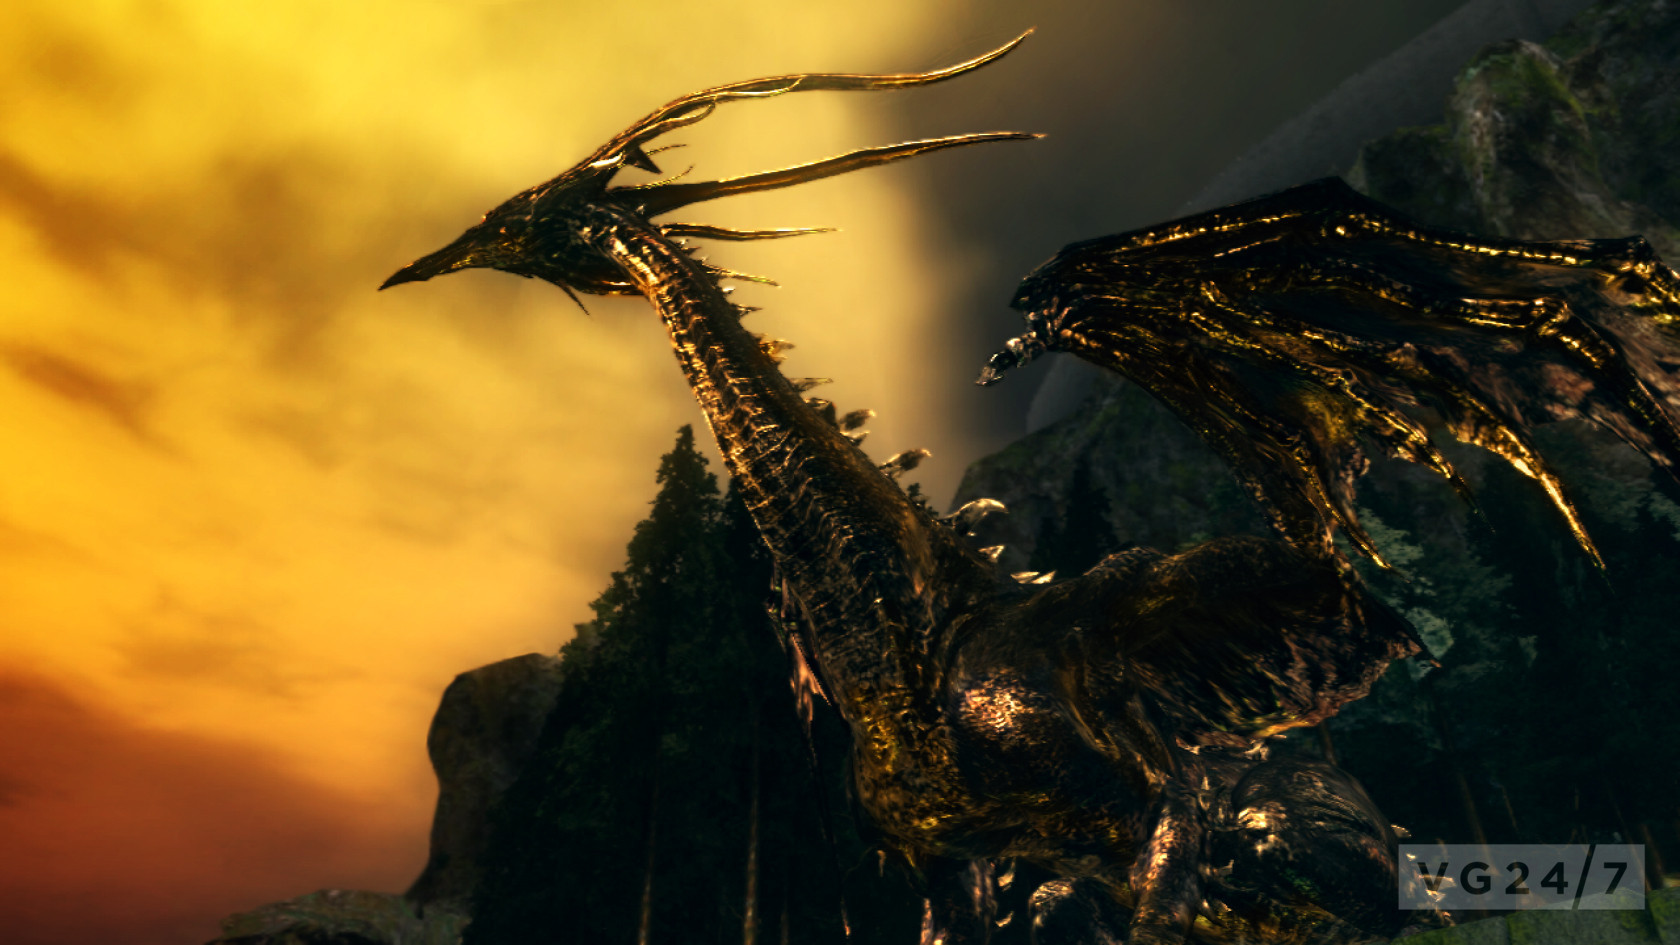 Dark Souls Ii Out Stunning Wallpapers High Quality: Dark Souls: Artorias Of The Abyss Edition